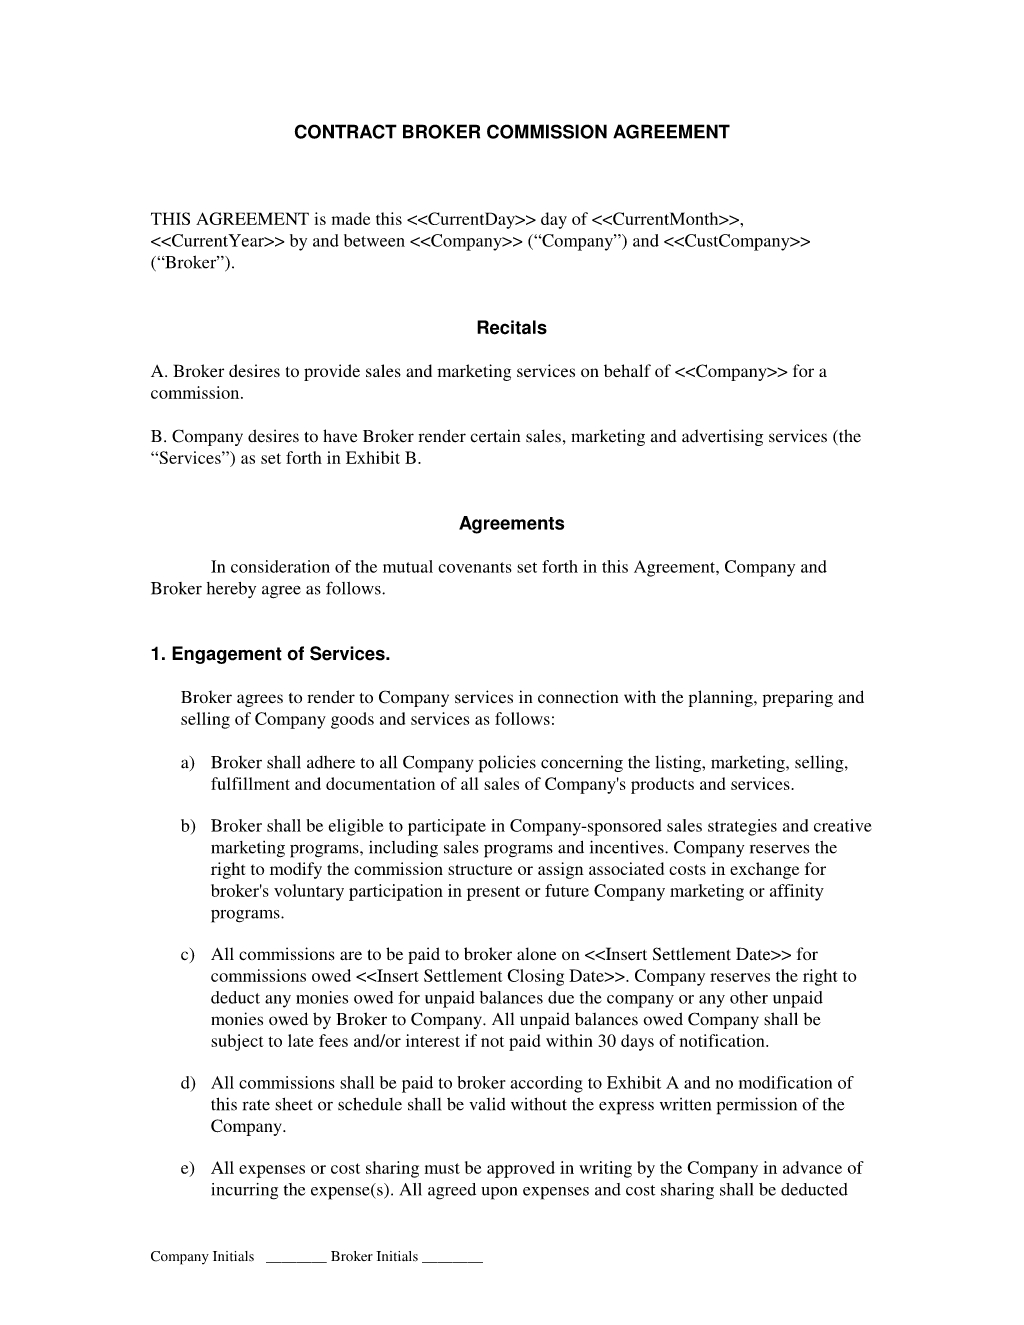 Broker Commission Sales Agreement : Advertising And Marketing intended for Free Printable Blank Templates For Paid And Owed